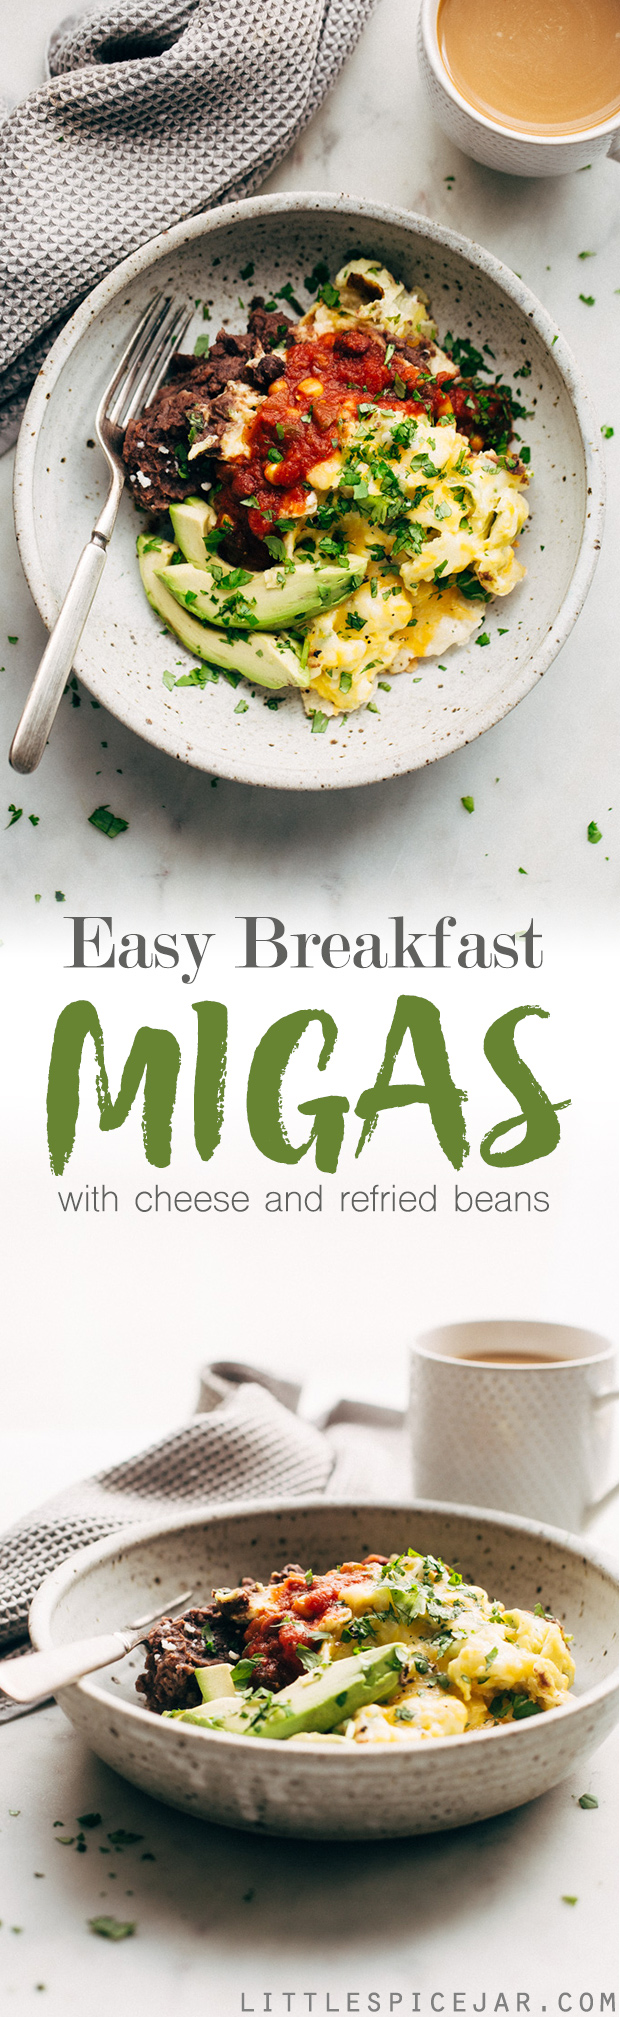 Easy Breakfast Migas - These Tex-Mex style scrambled eggs are made with tortilla chips, cheese, and lots of salsa! #migas #texmex #breakfast #brinner | Litltlespicejar.com